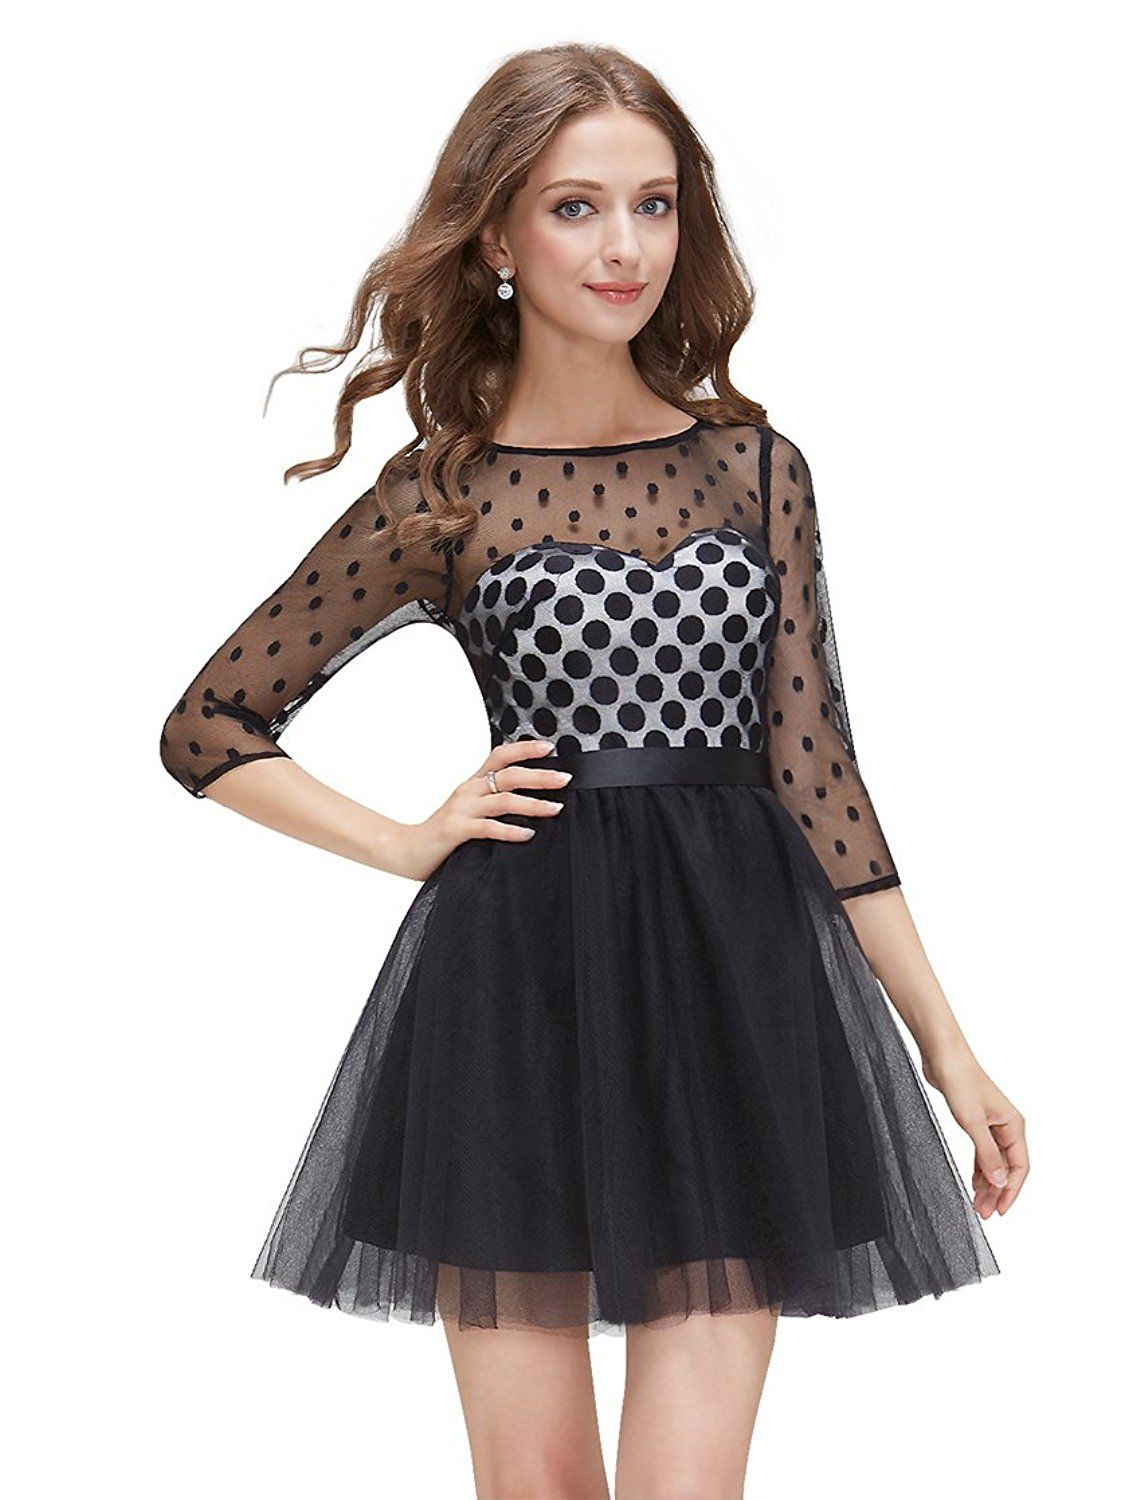 Ever prettyâue semi sheer tulle polka dot sleeve party dress